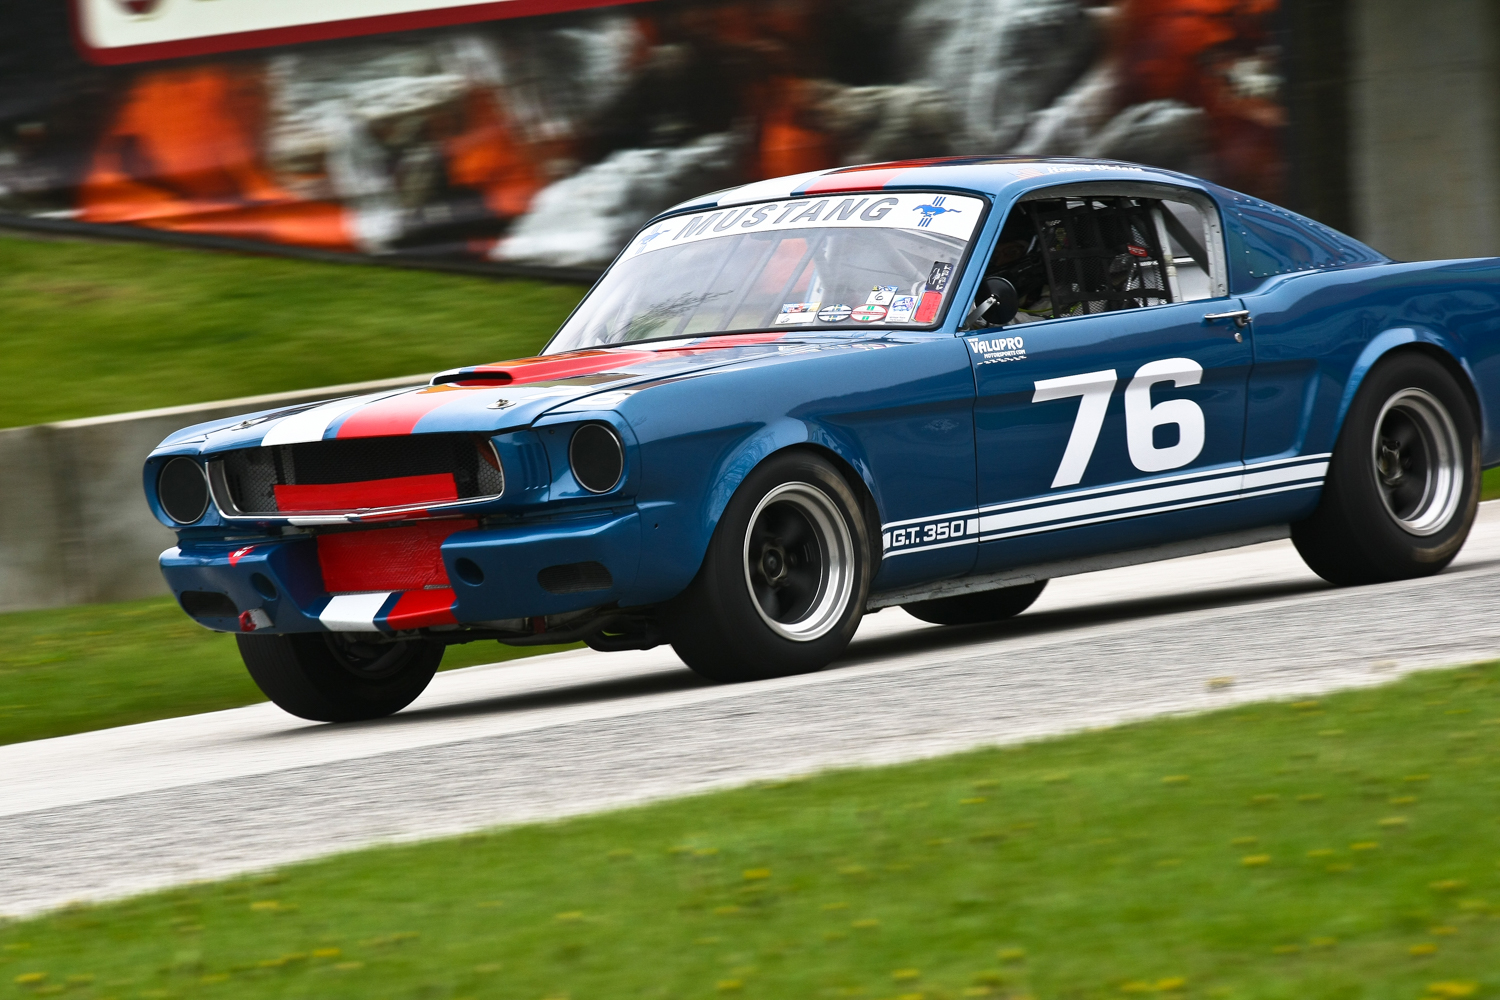 #76 - Henry Vicioso - 1965 Mustang. Photo: Jeff Schabowski